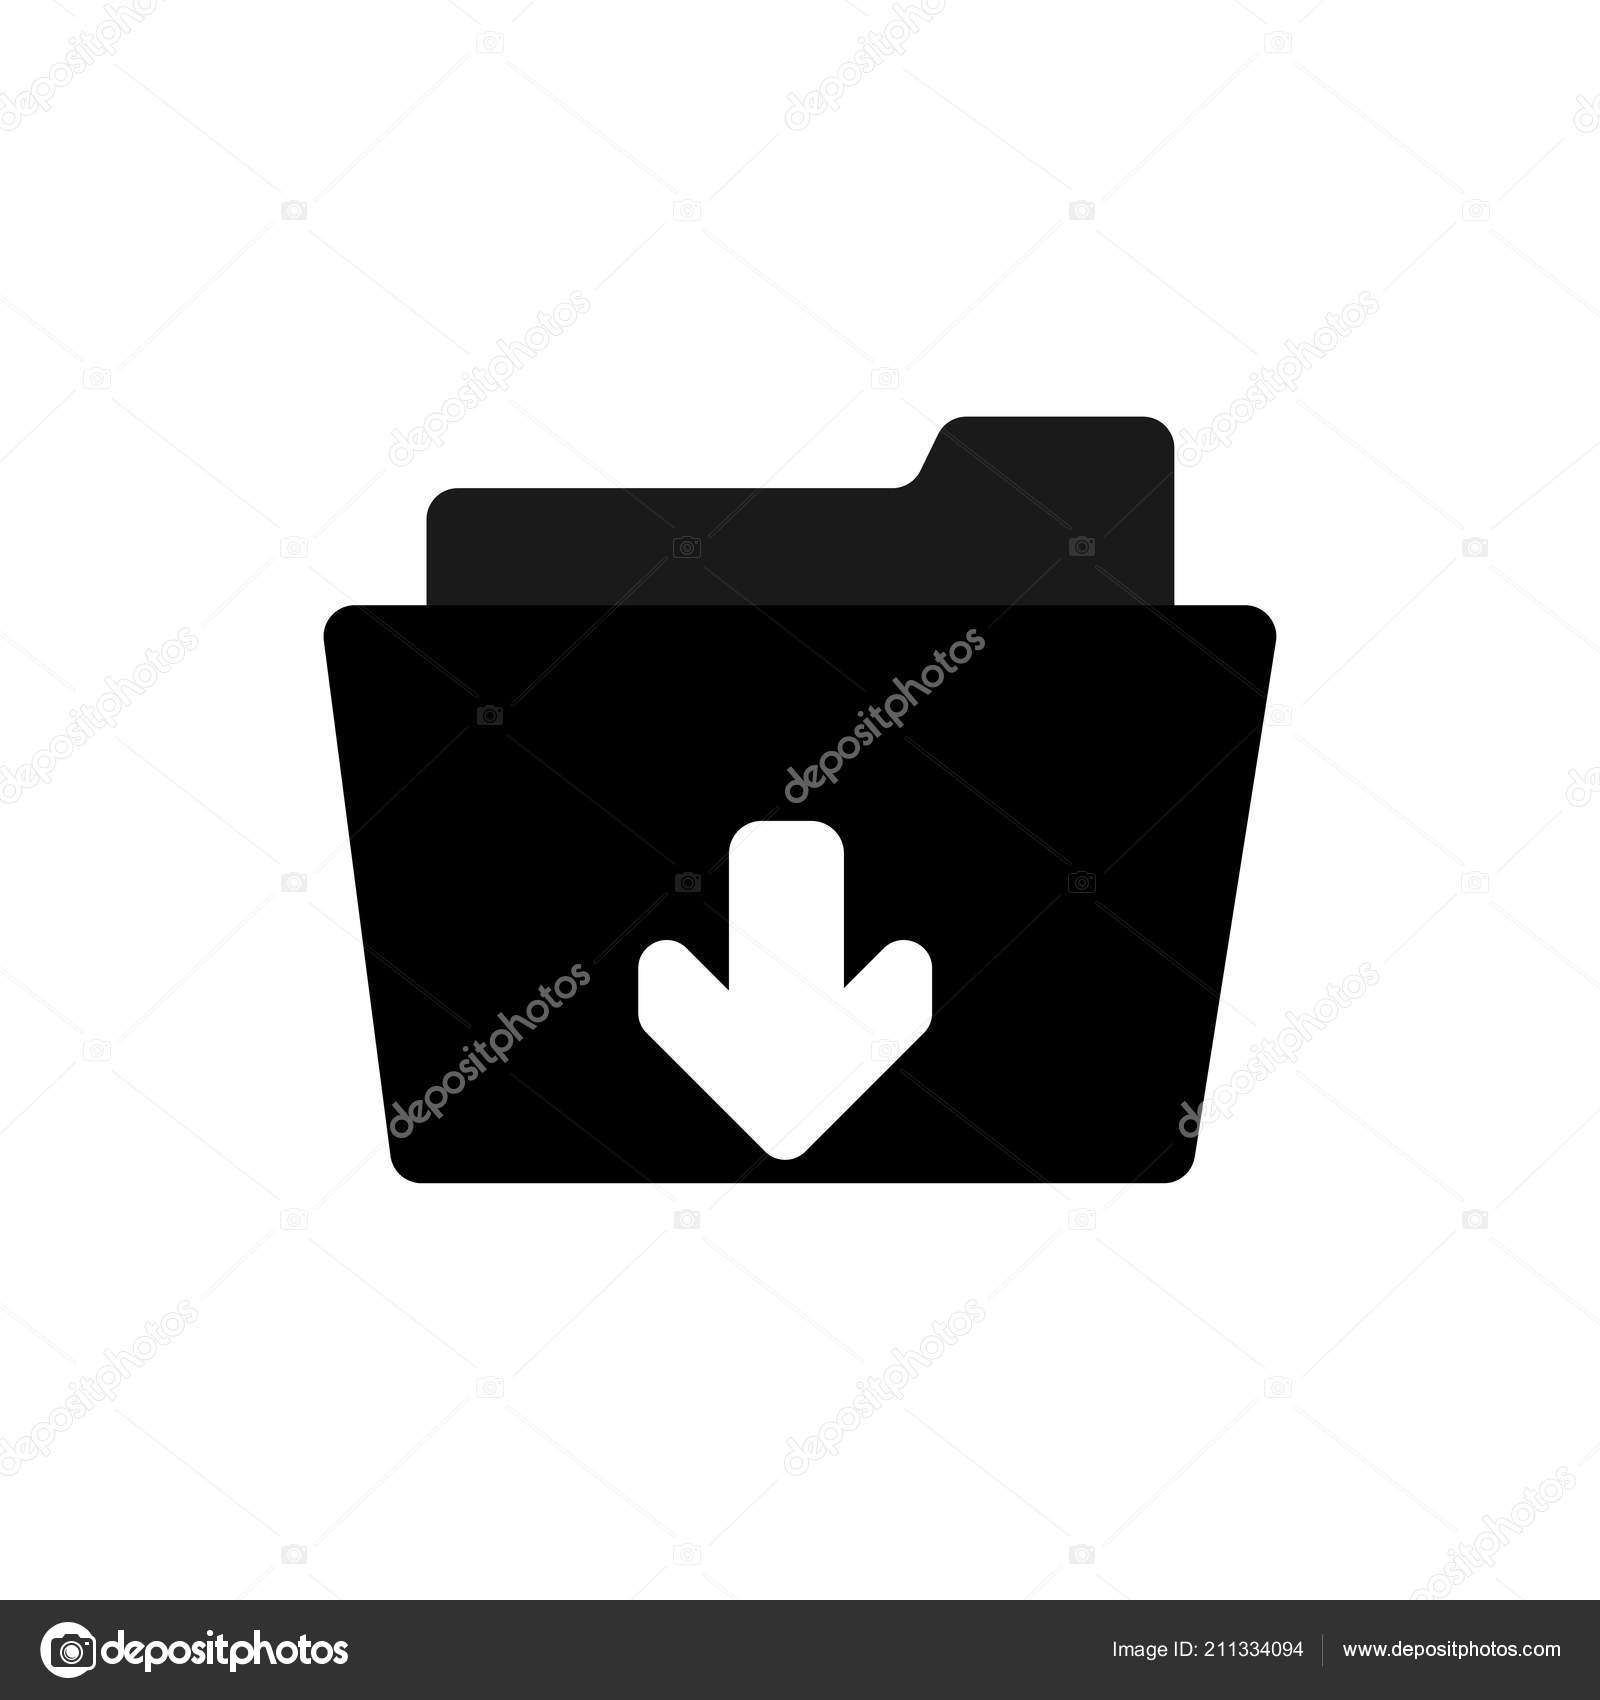 Download Vector Icon Install Symbol Modern Simple Flat Vector